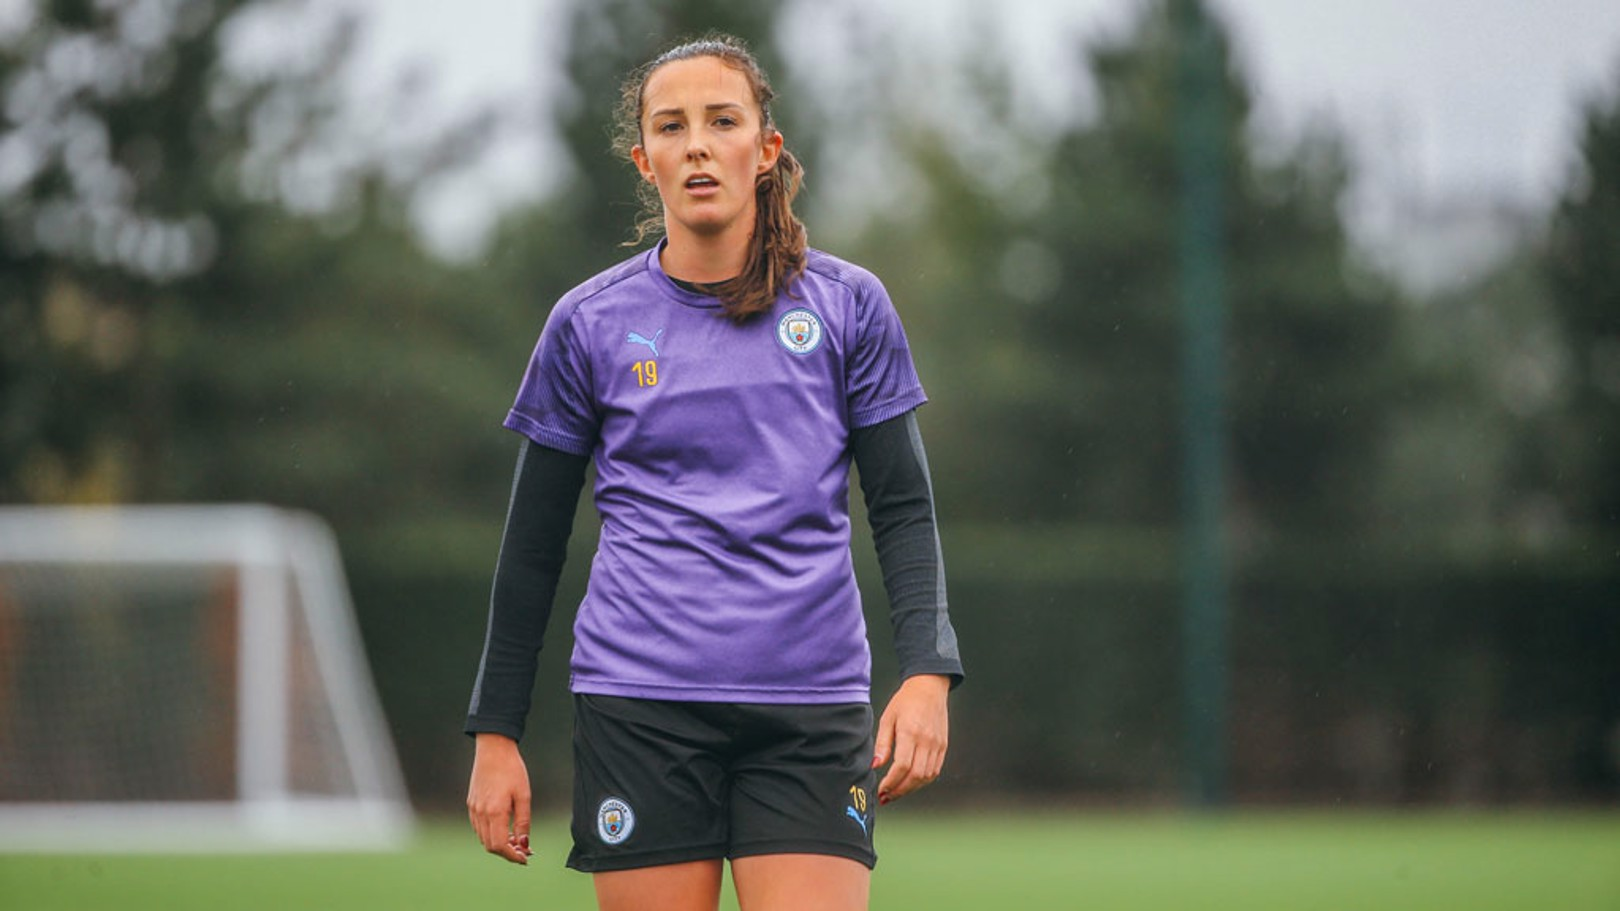 RAIN AND WEIR: Will Caroline Weir continue her excellent form with a goal on Saturday?